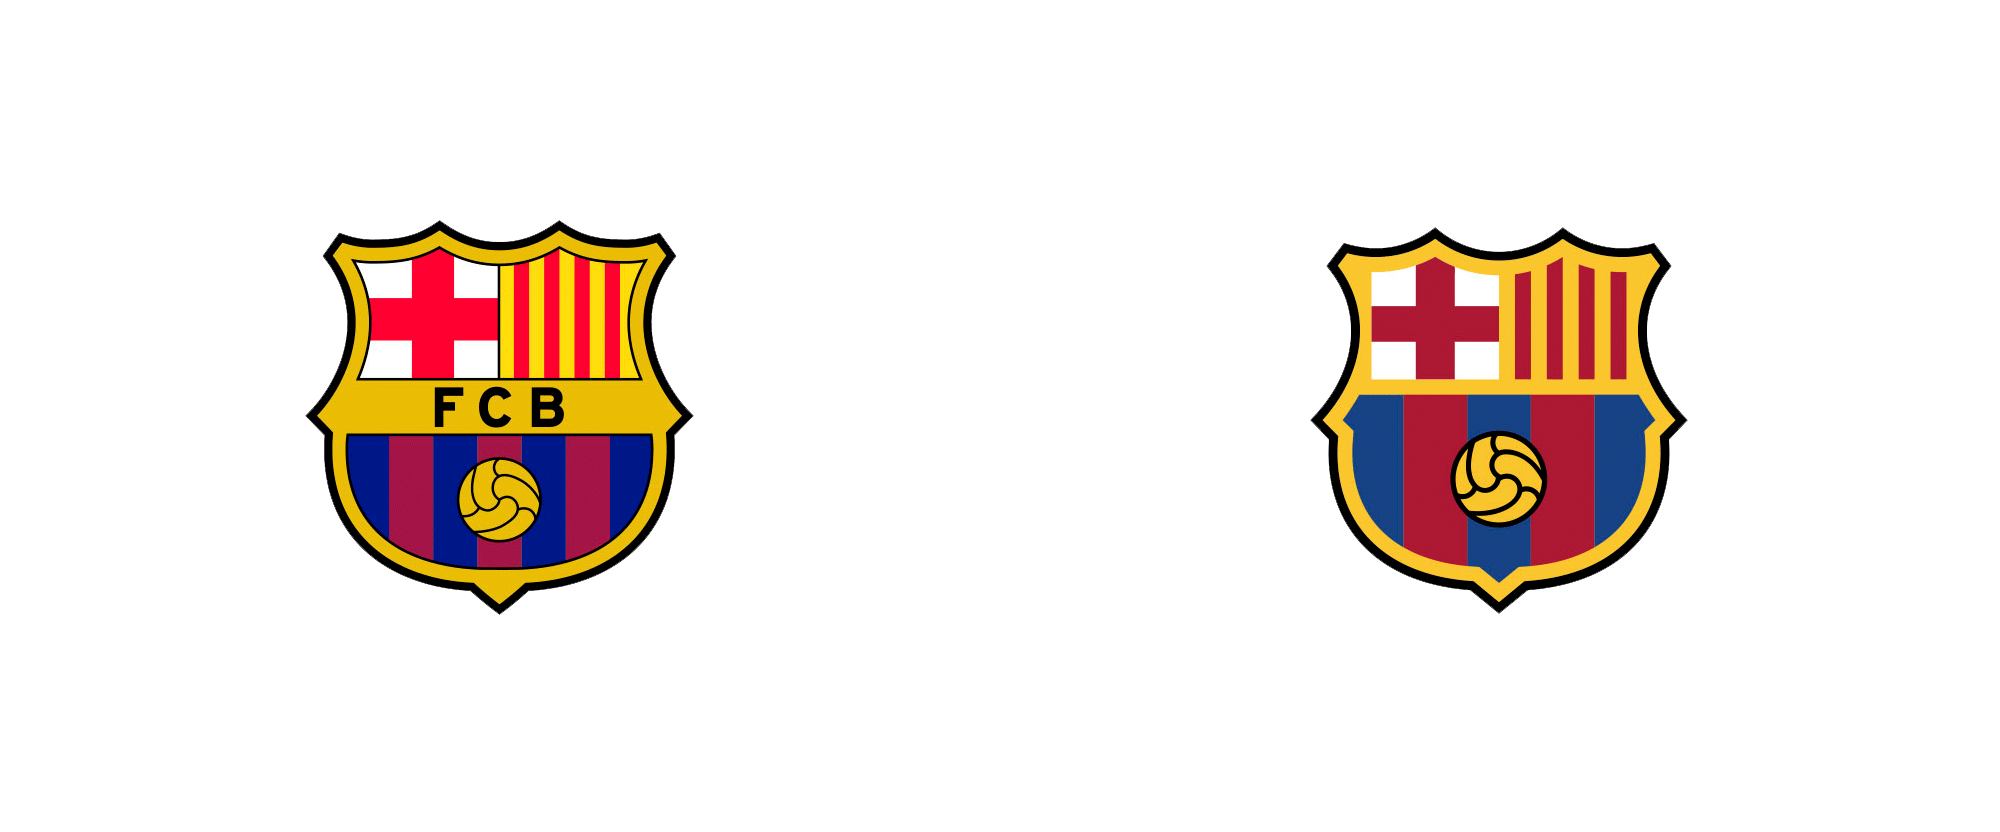 Brand New: New Crest and Identity for FC Barcelona by Summa.